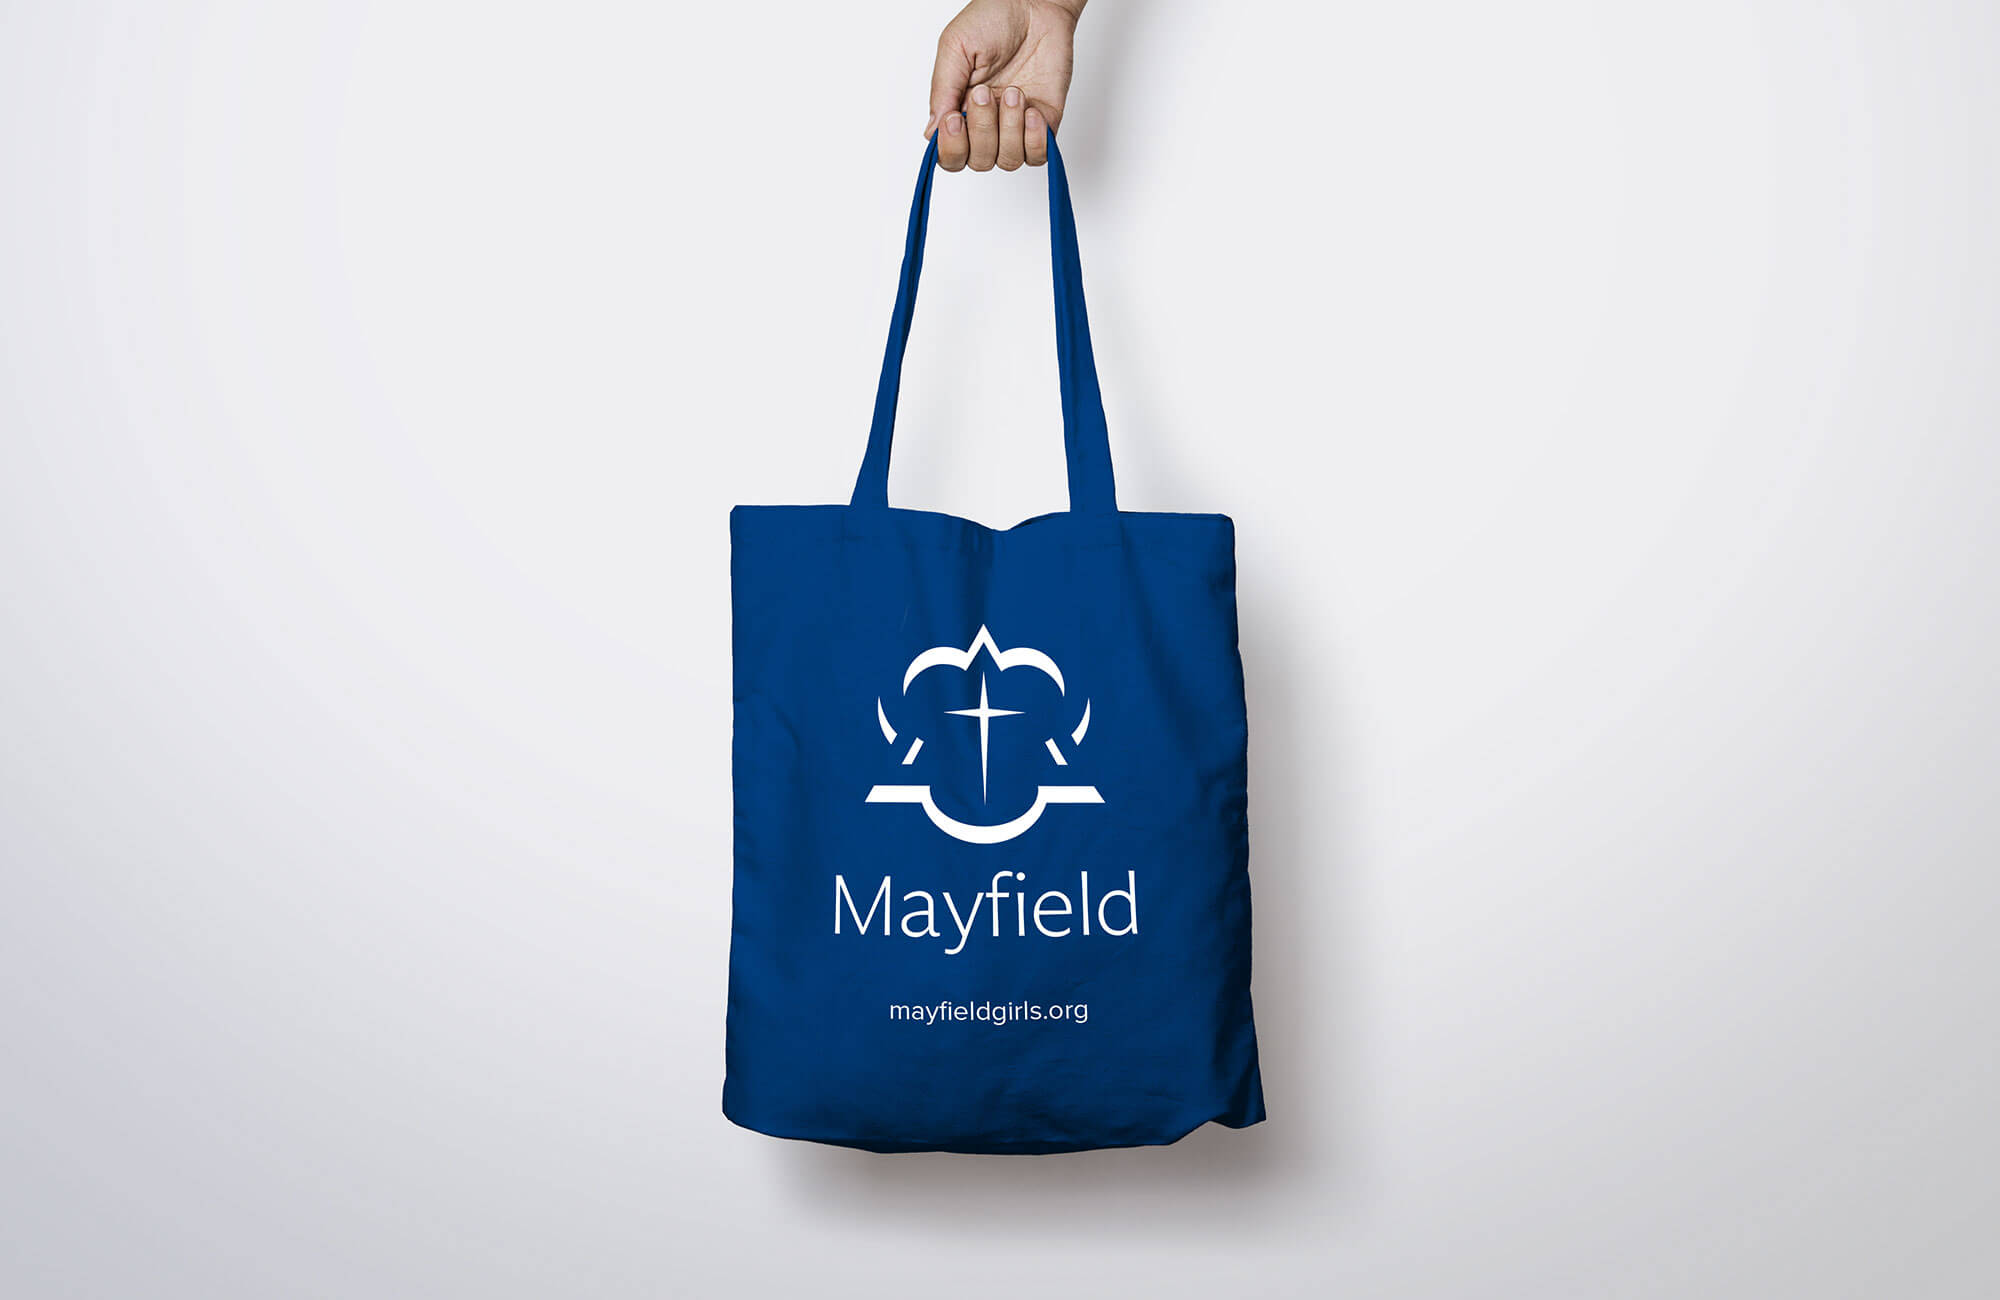 Mayfield School Branded Cotton Tote Bag Design Concept